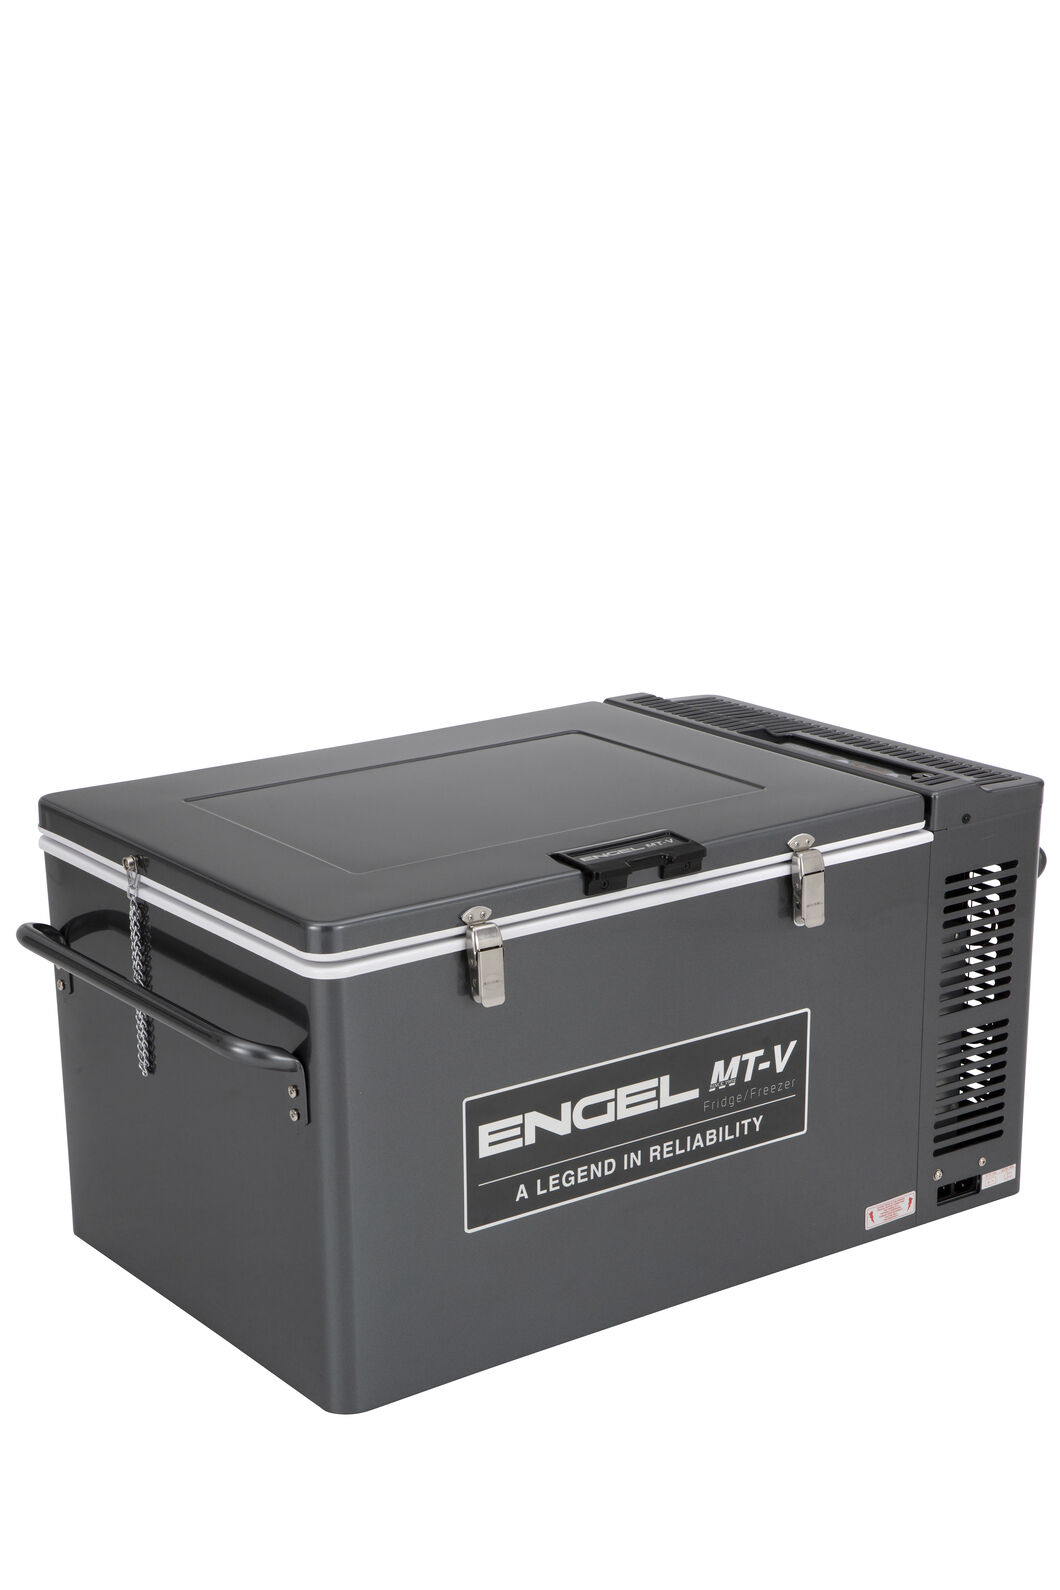 Engel MT-V Portable Fridge Freezer — 60L, None, hi-res